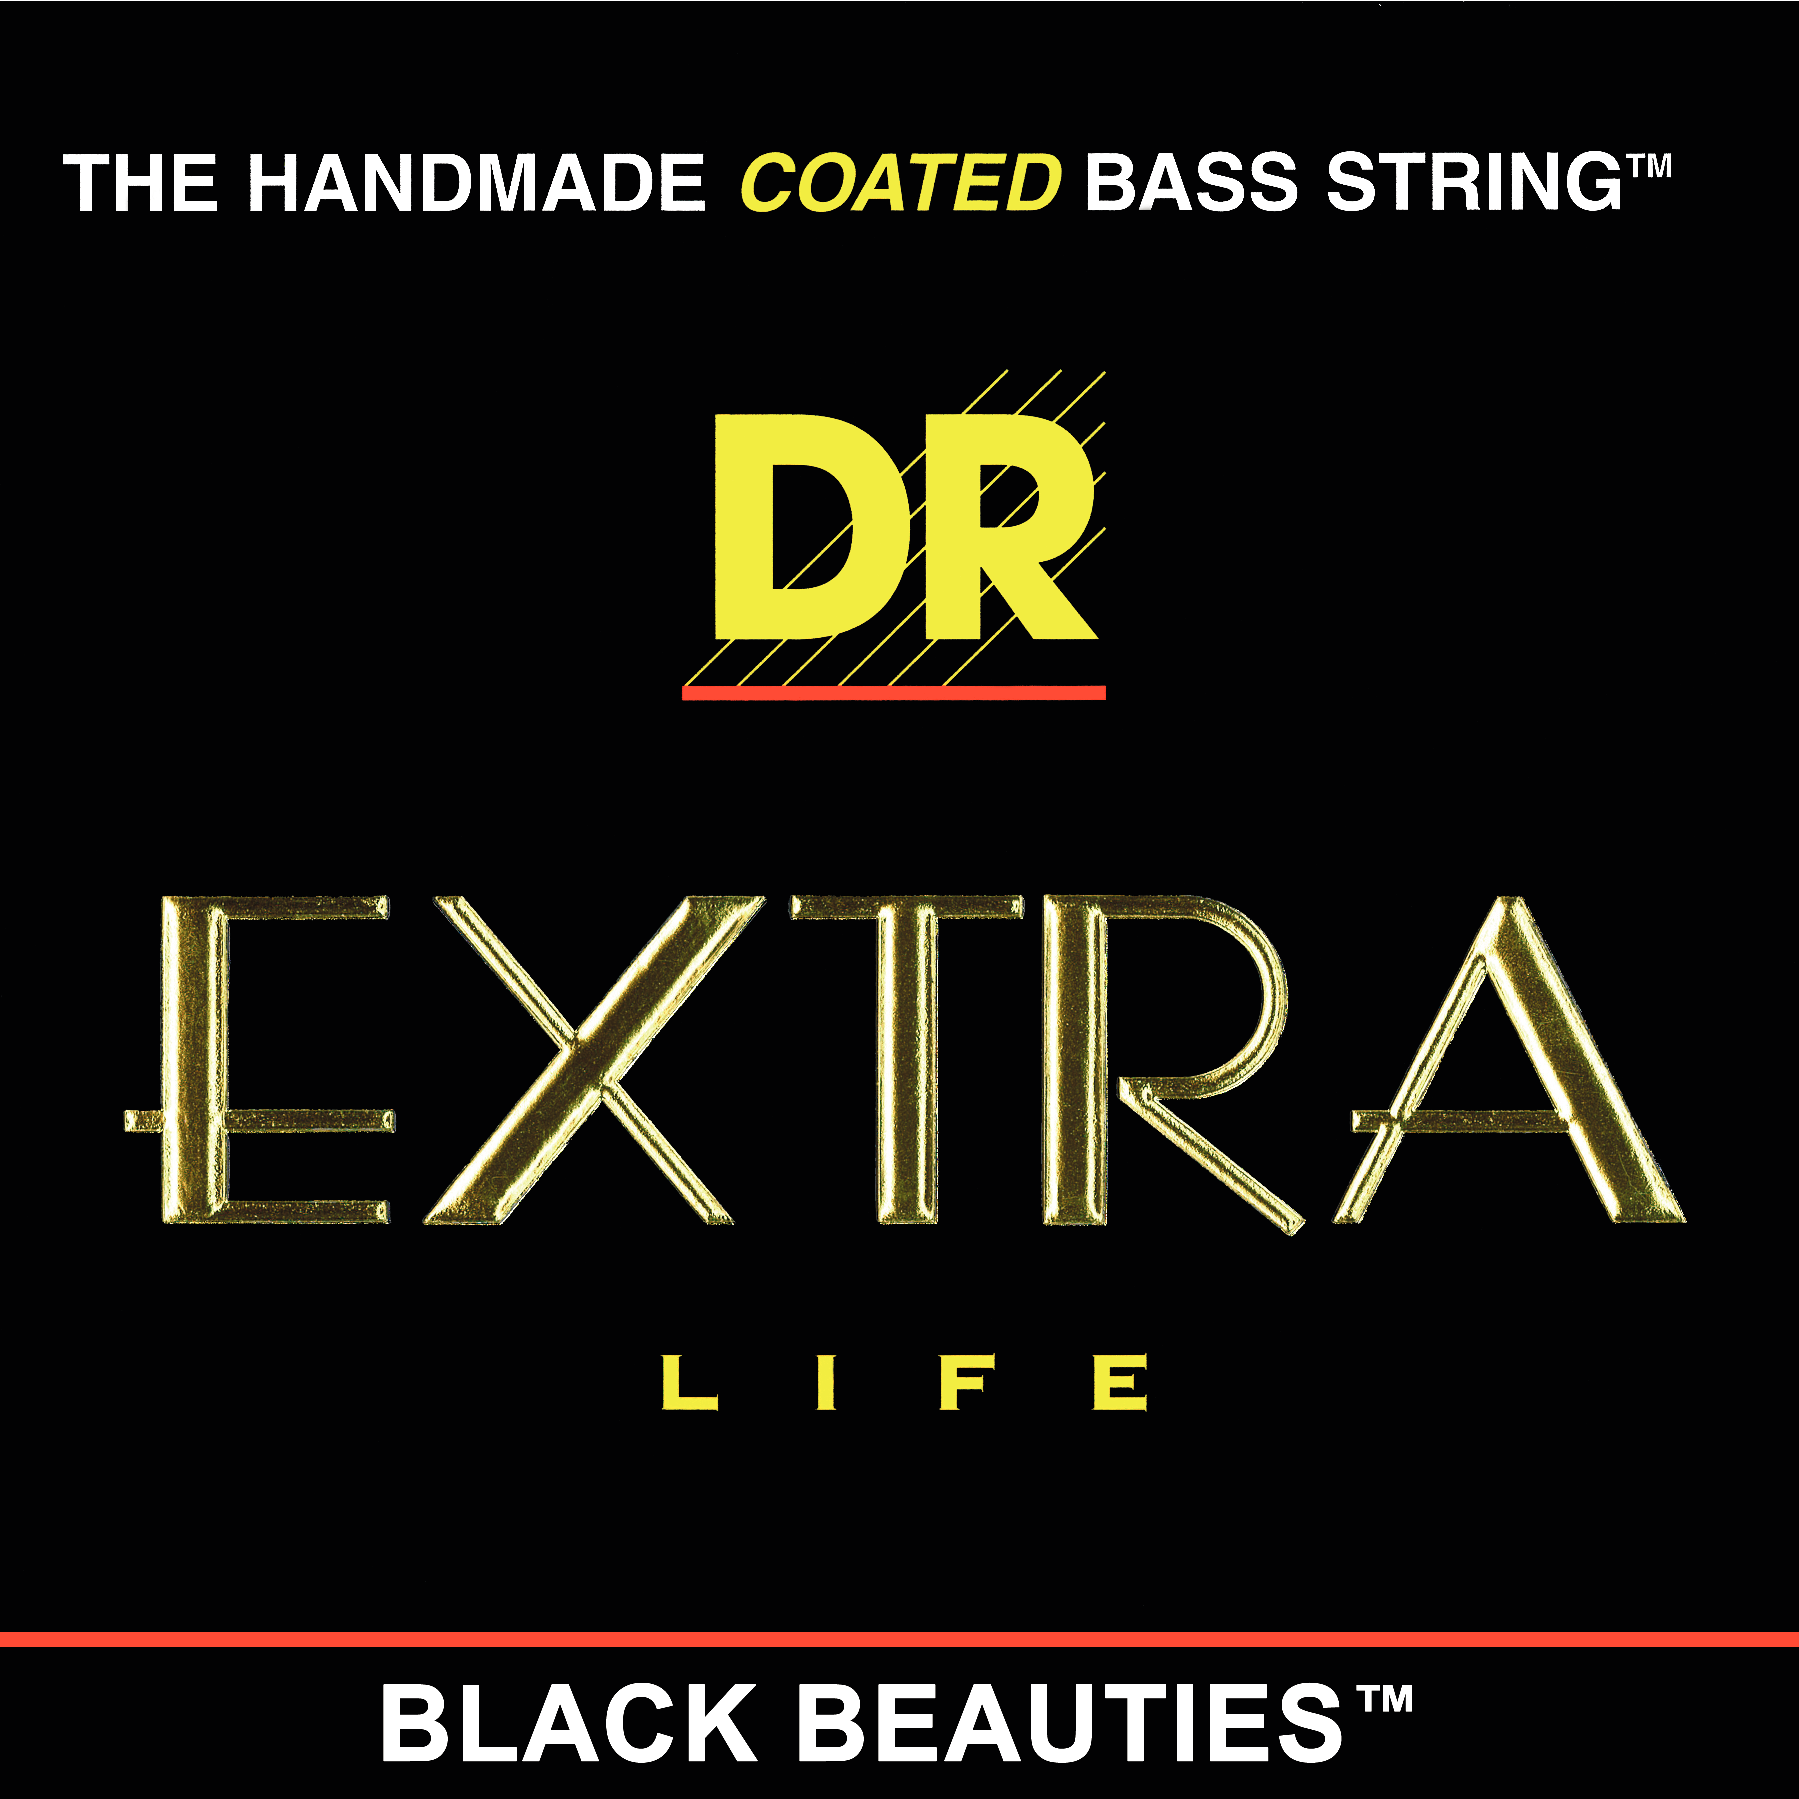 Extra Black Beauties Lite 5 String (.040 - .120), DR B EXBK BKB5-40